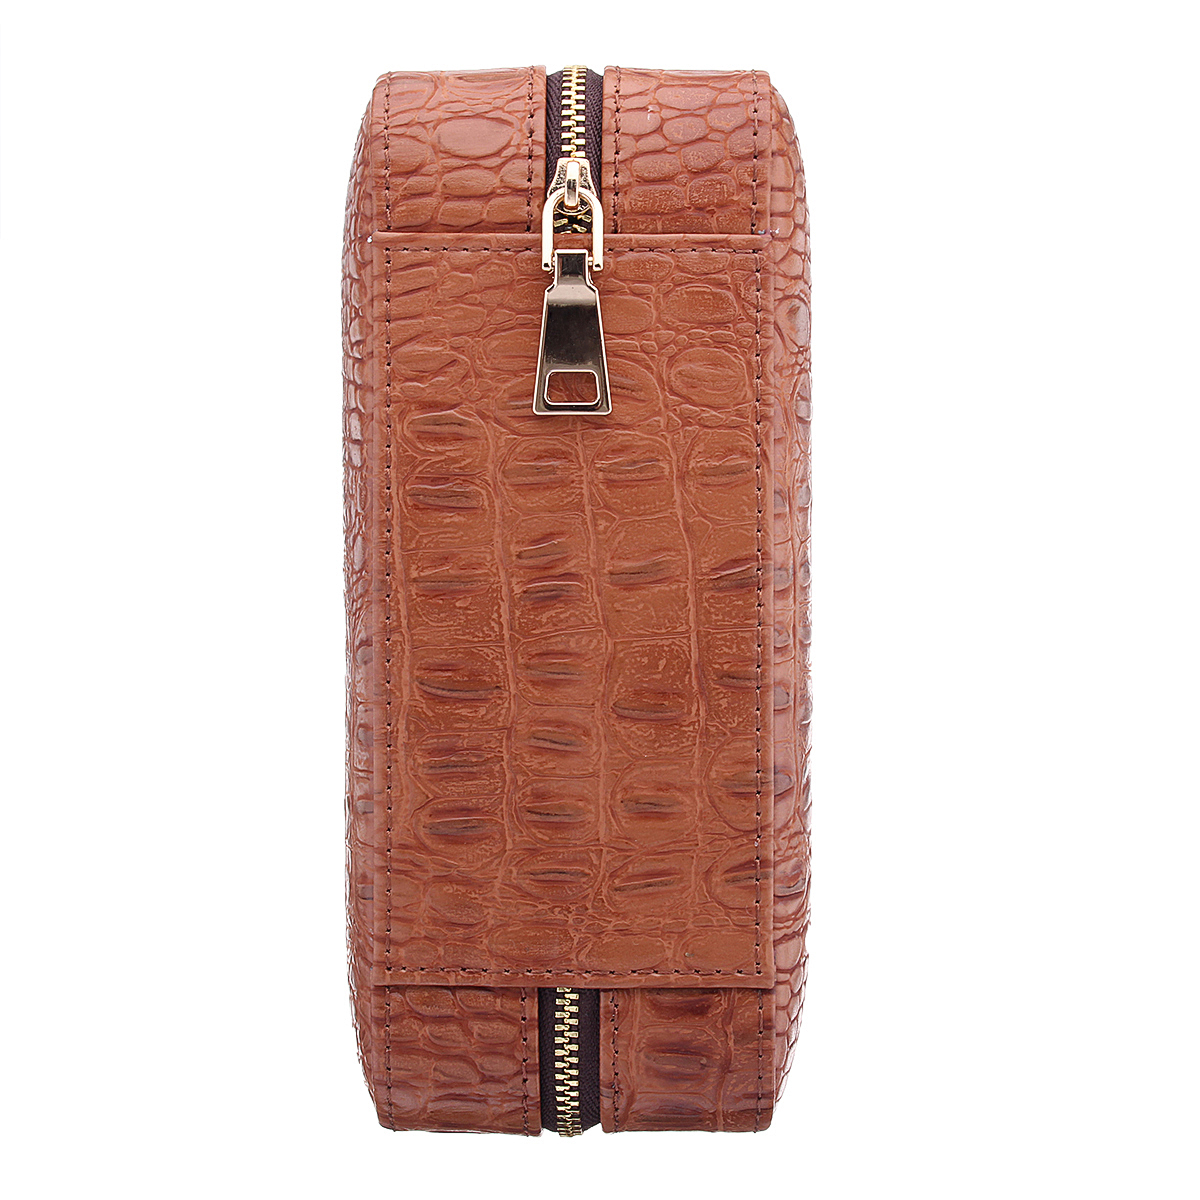 Brown Leather Bonded Cigar Case With Cutter Holders 5 Cigars for Designed